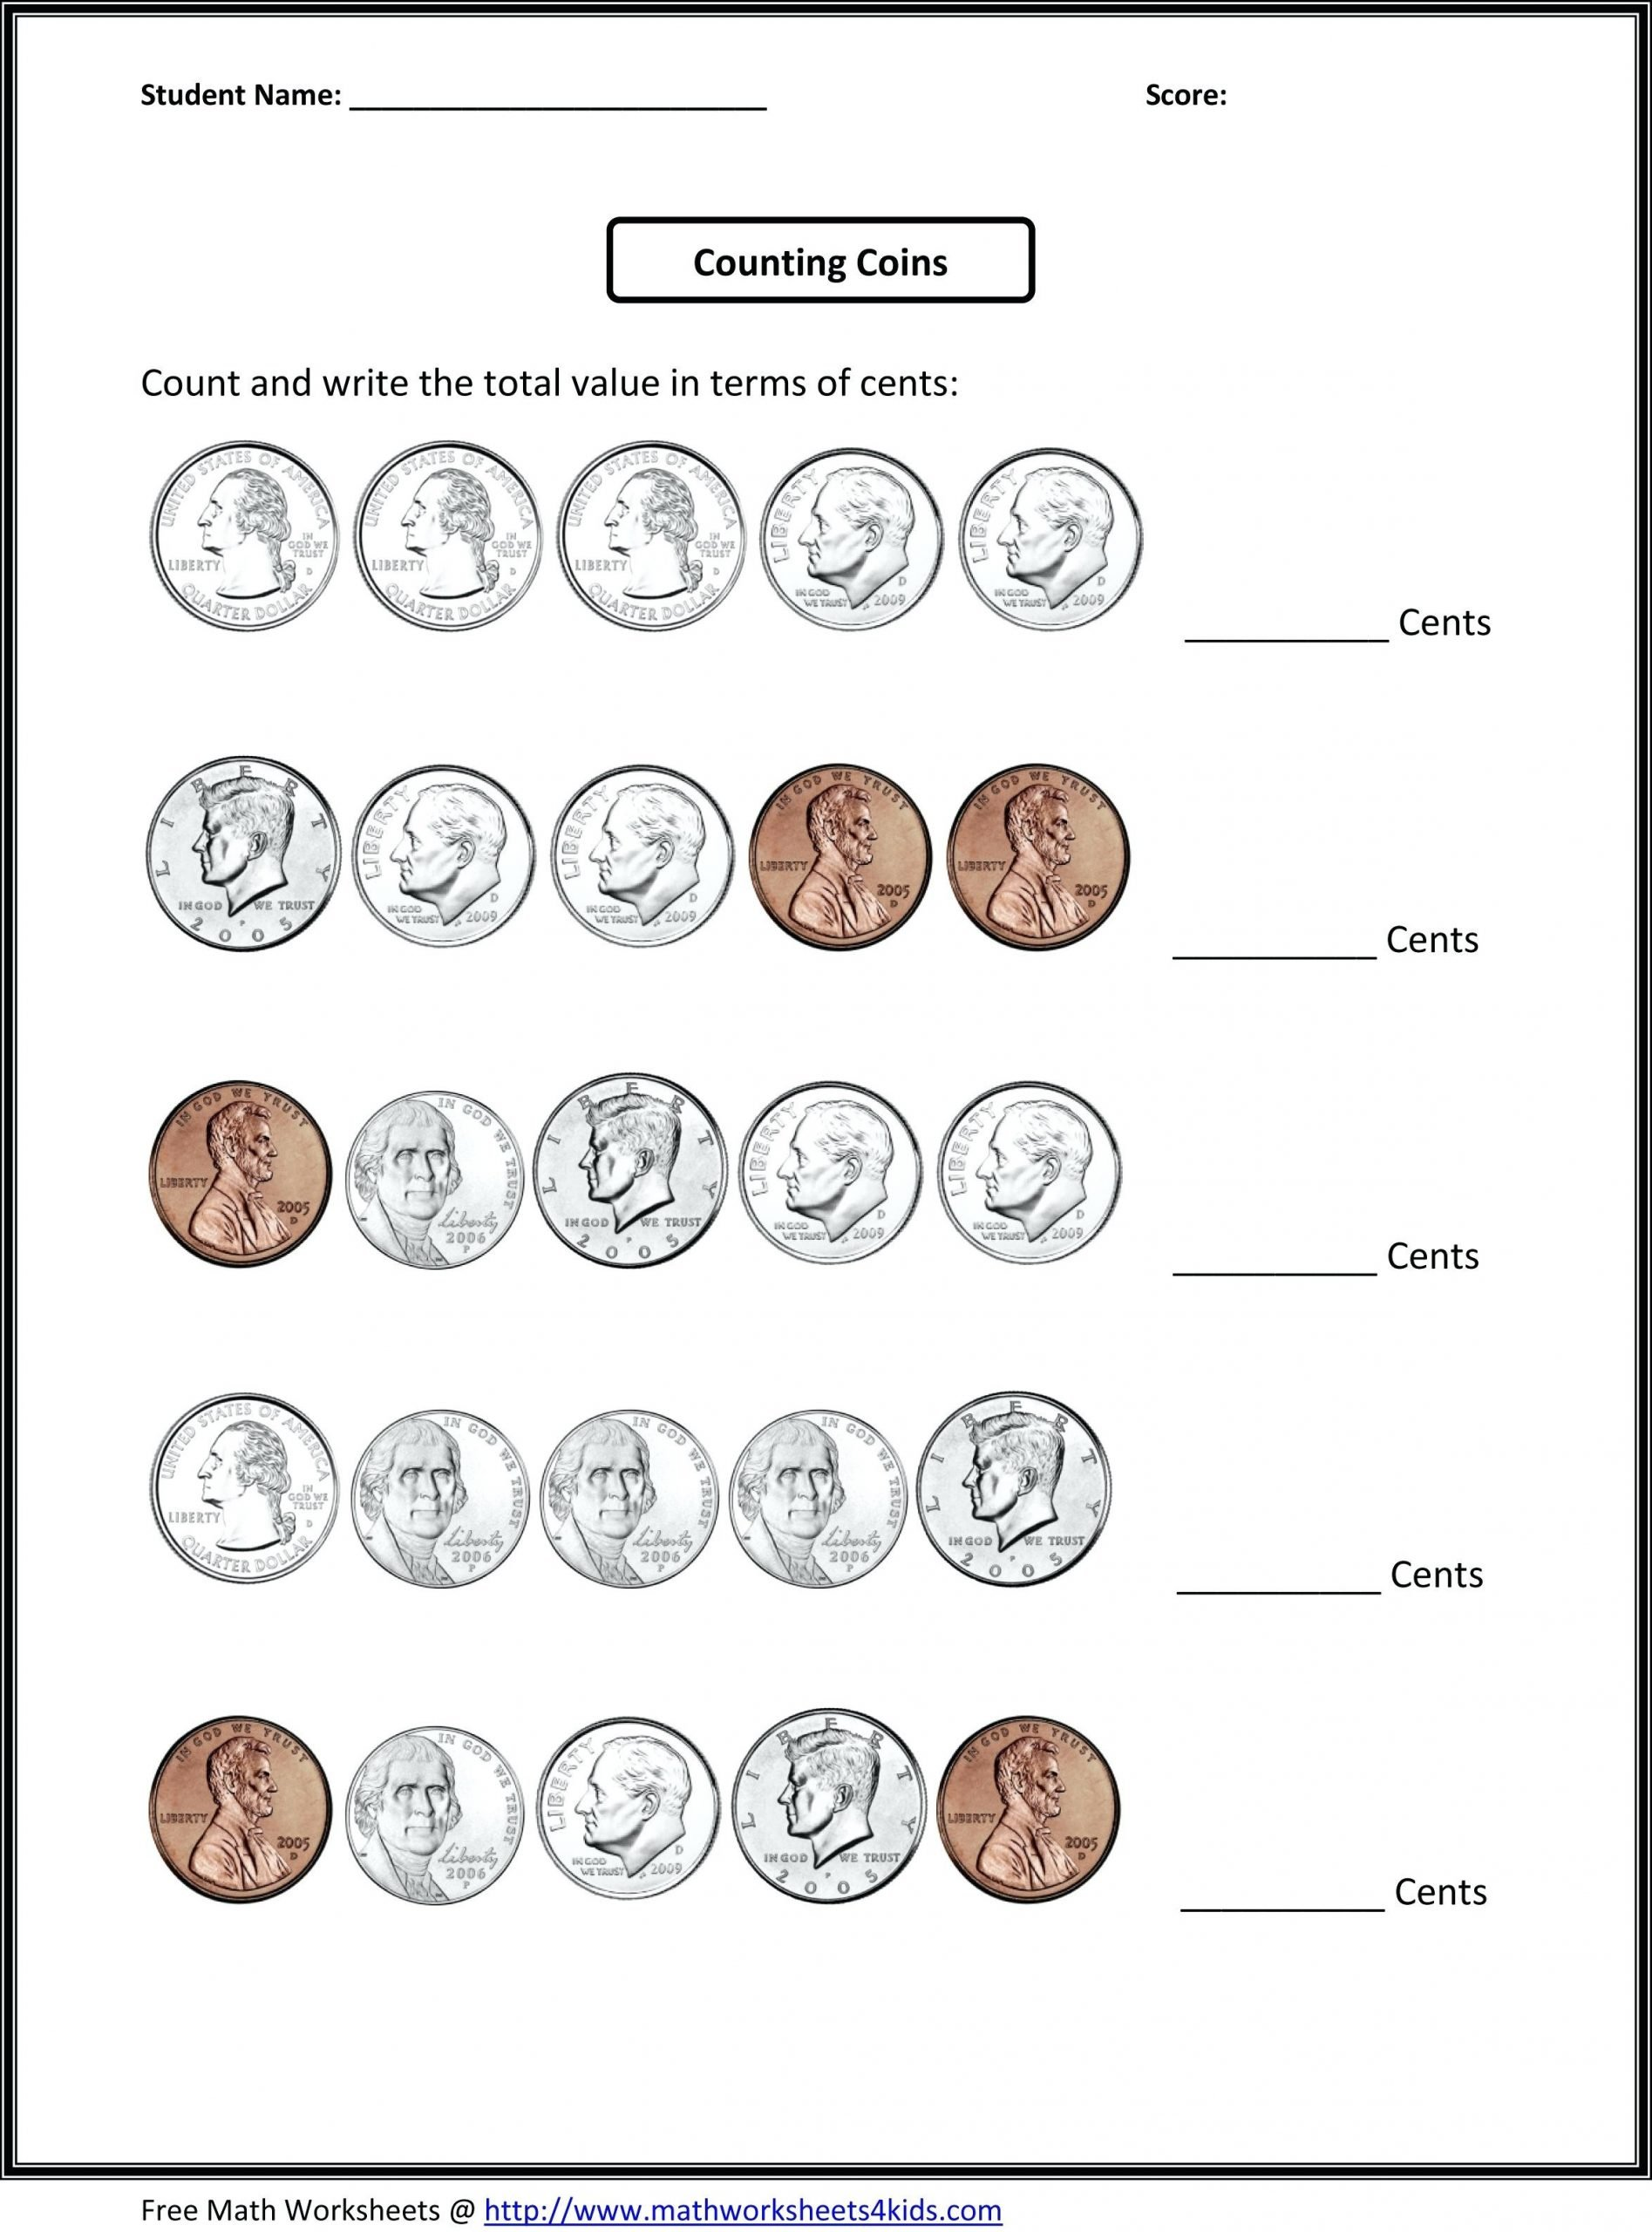 Counting Coins Worksheets First Grade 66 Fun Money Worksheets to Print